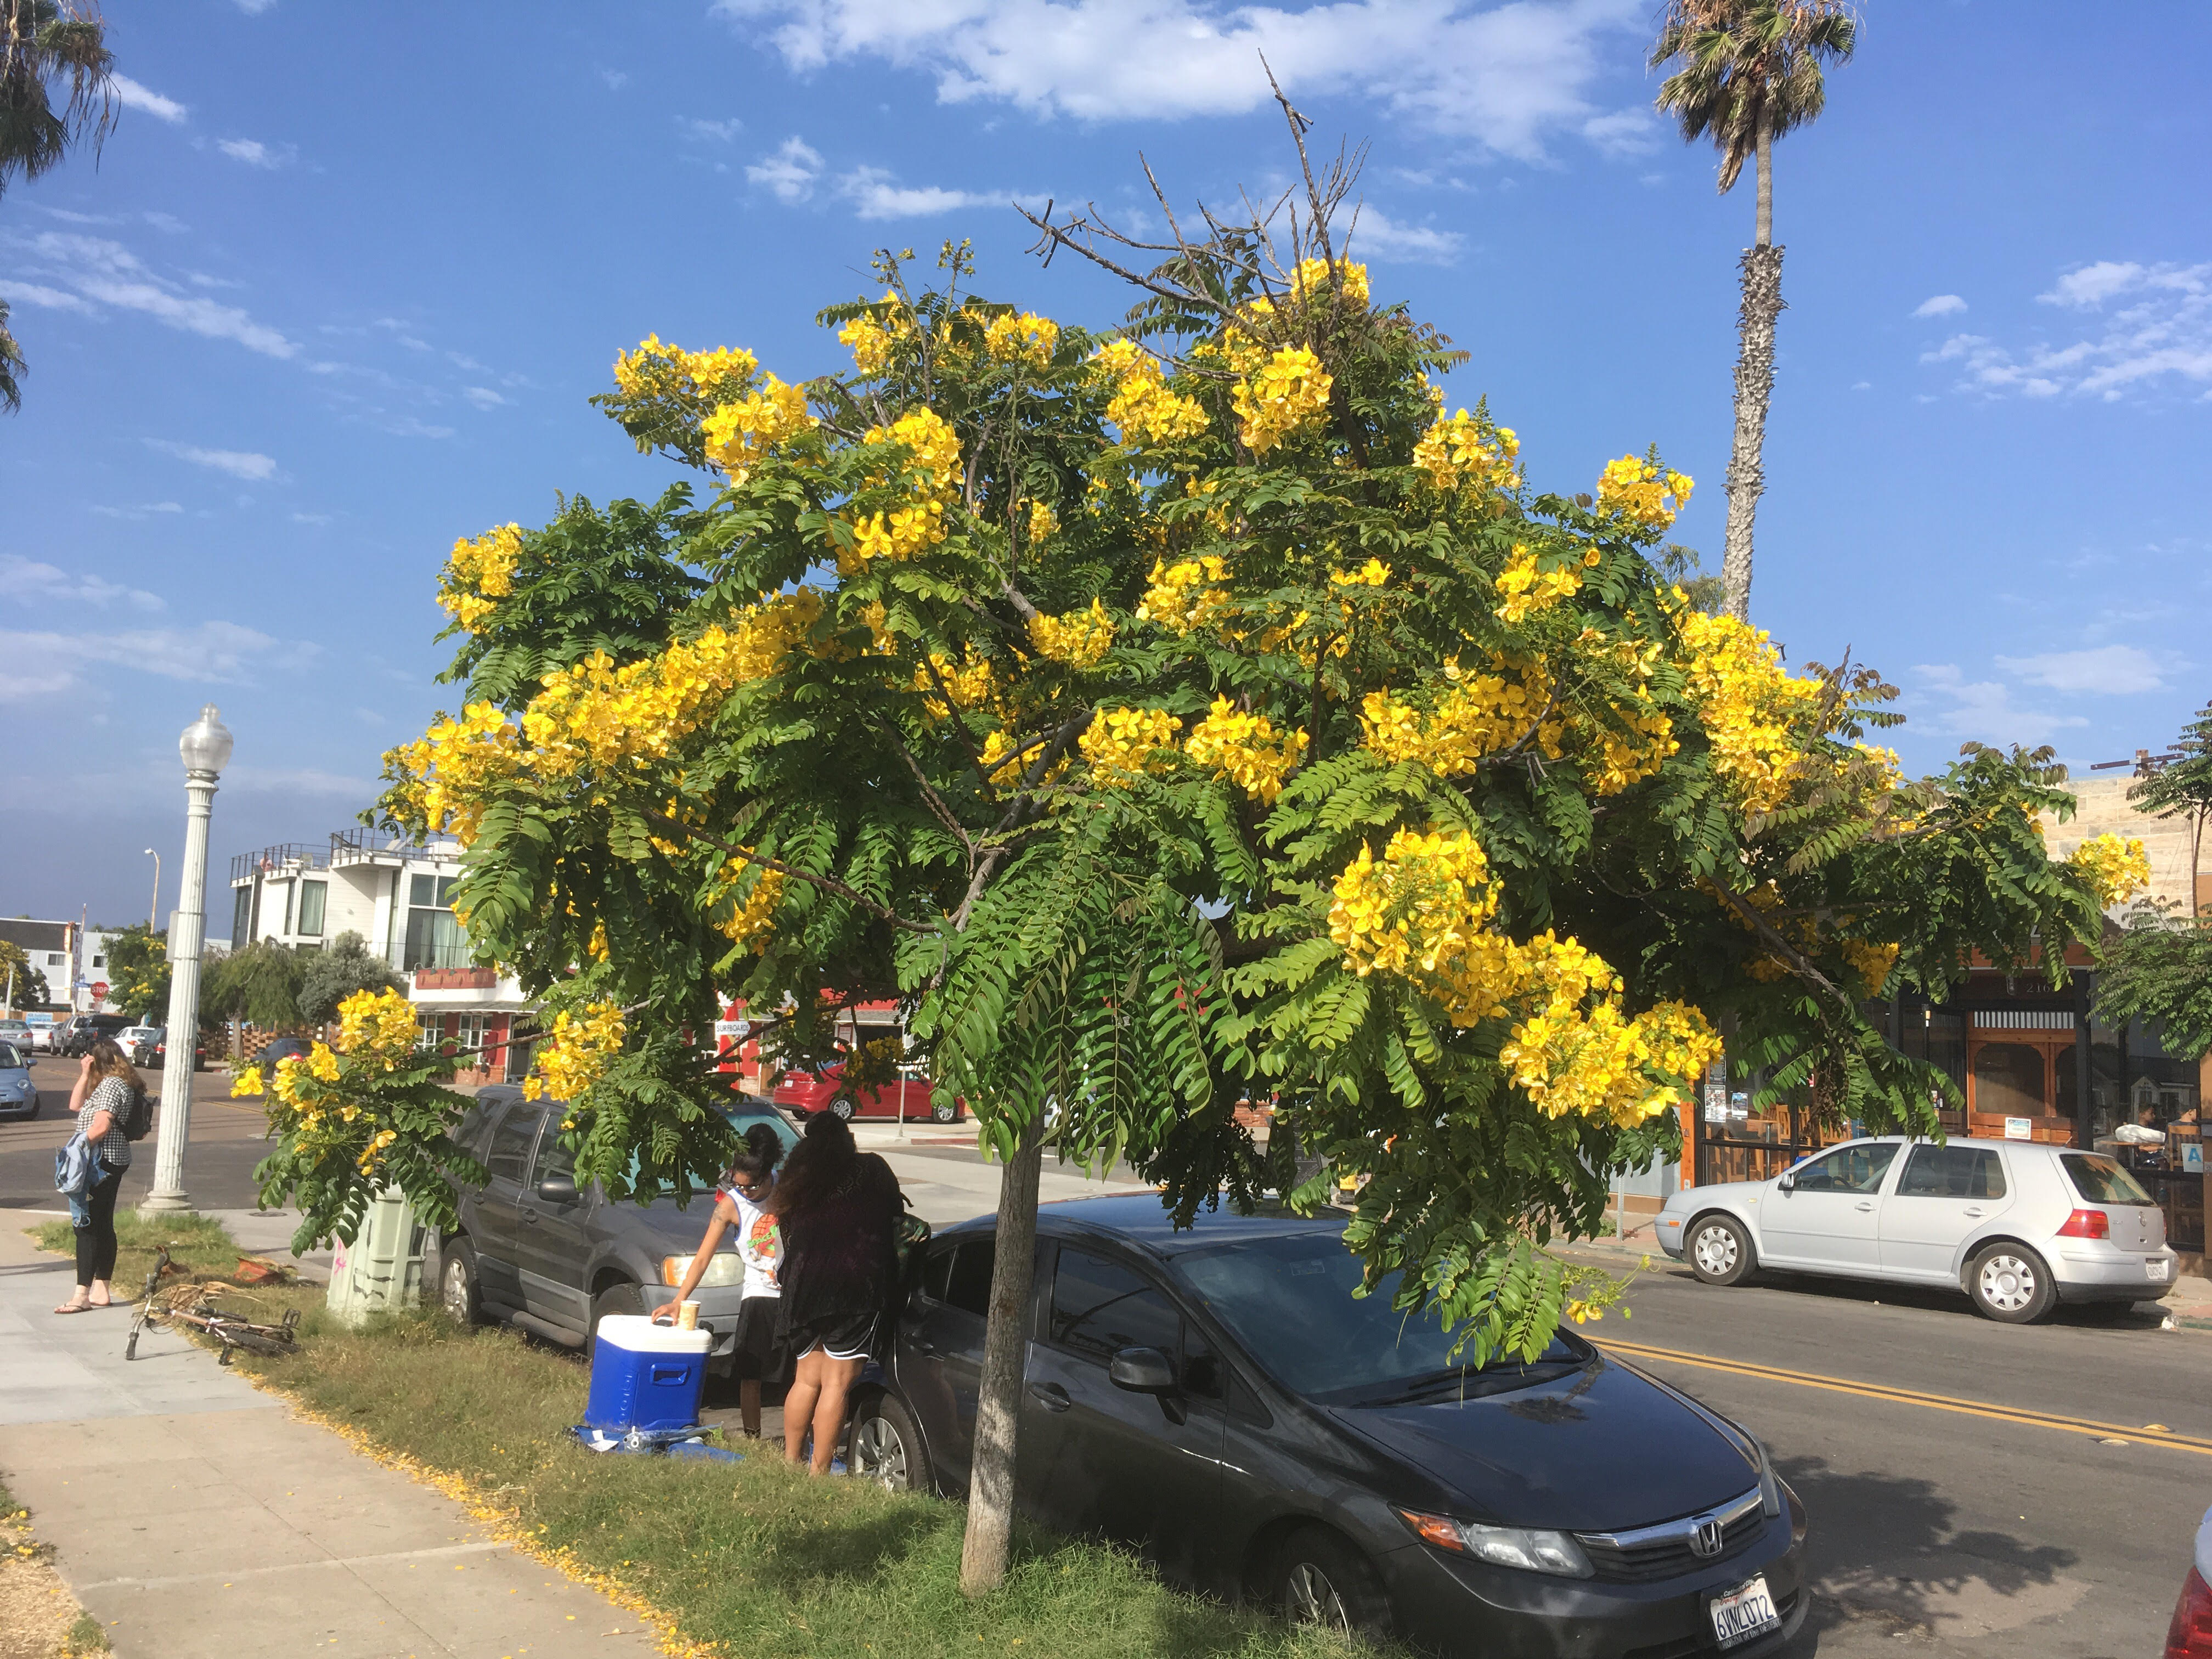 Tree with yellow flowers in ocean beach ca 92107 ocean beach tree with yellow flowers in ocean beach mightylinksfo